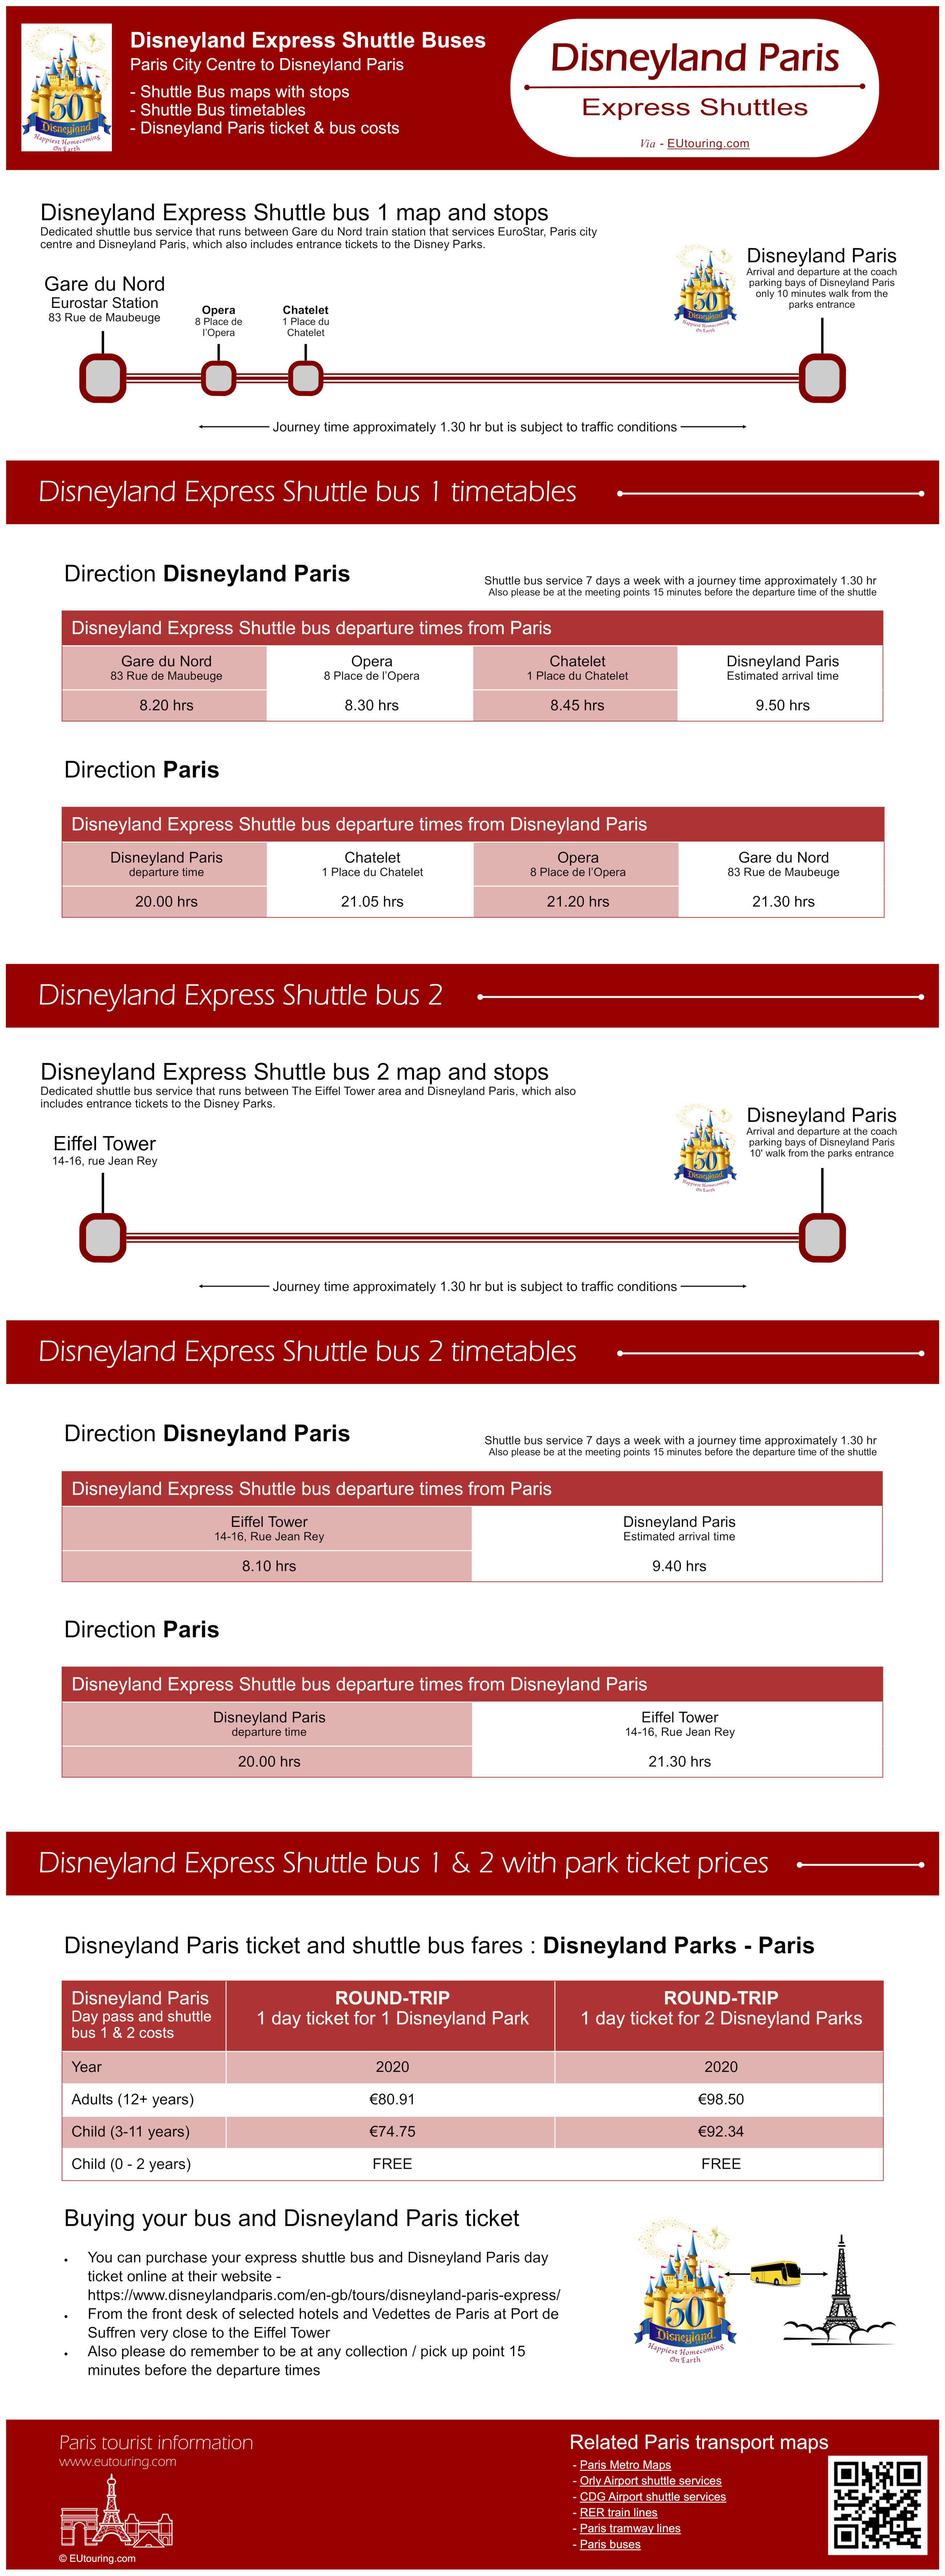 Disneyland Paris Transport Options Including Airport Transfers